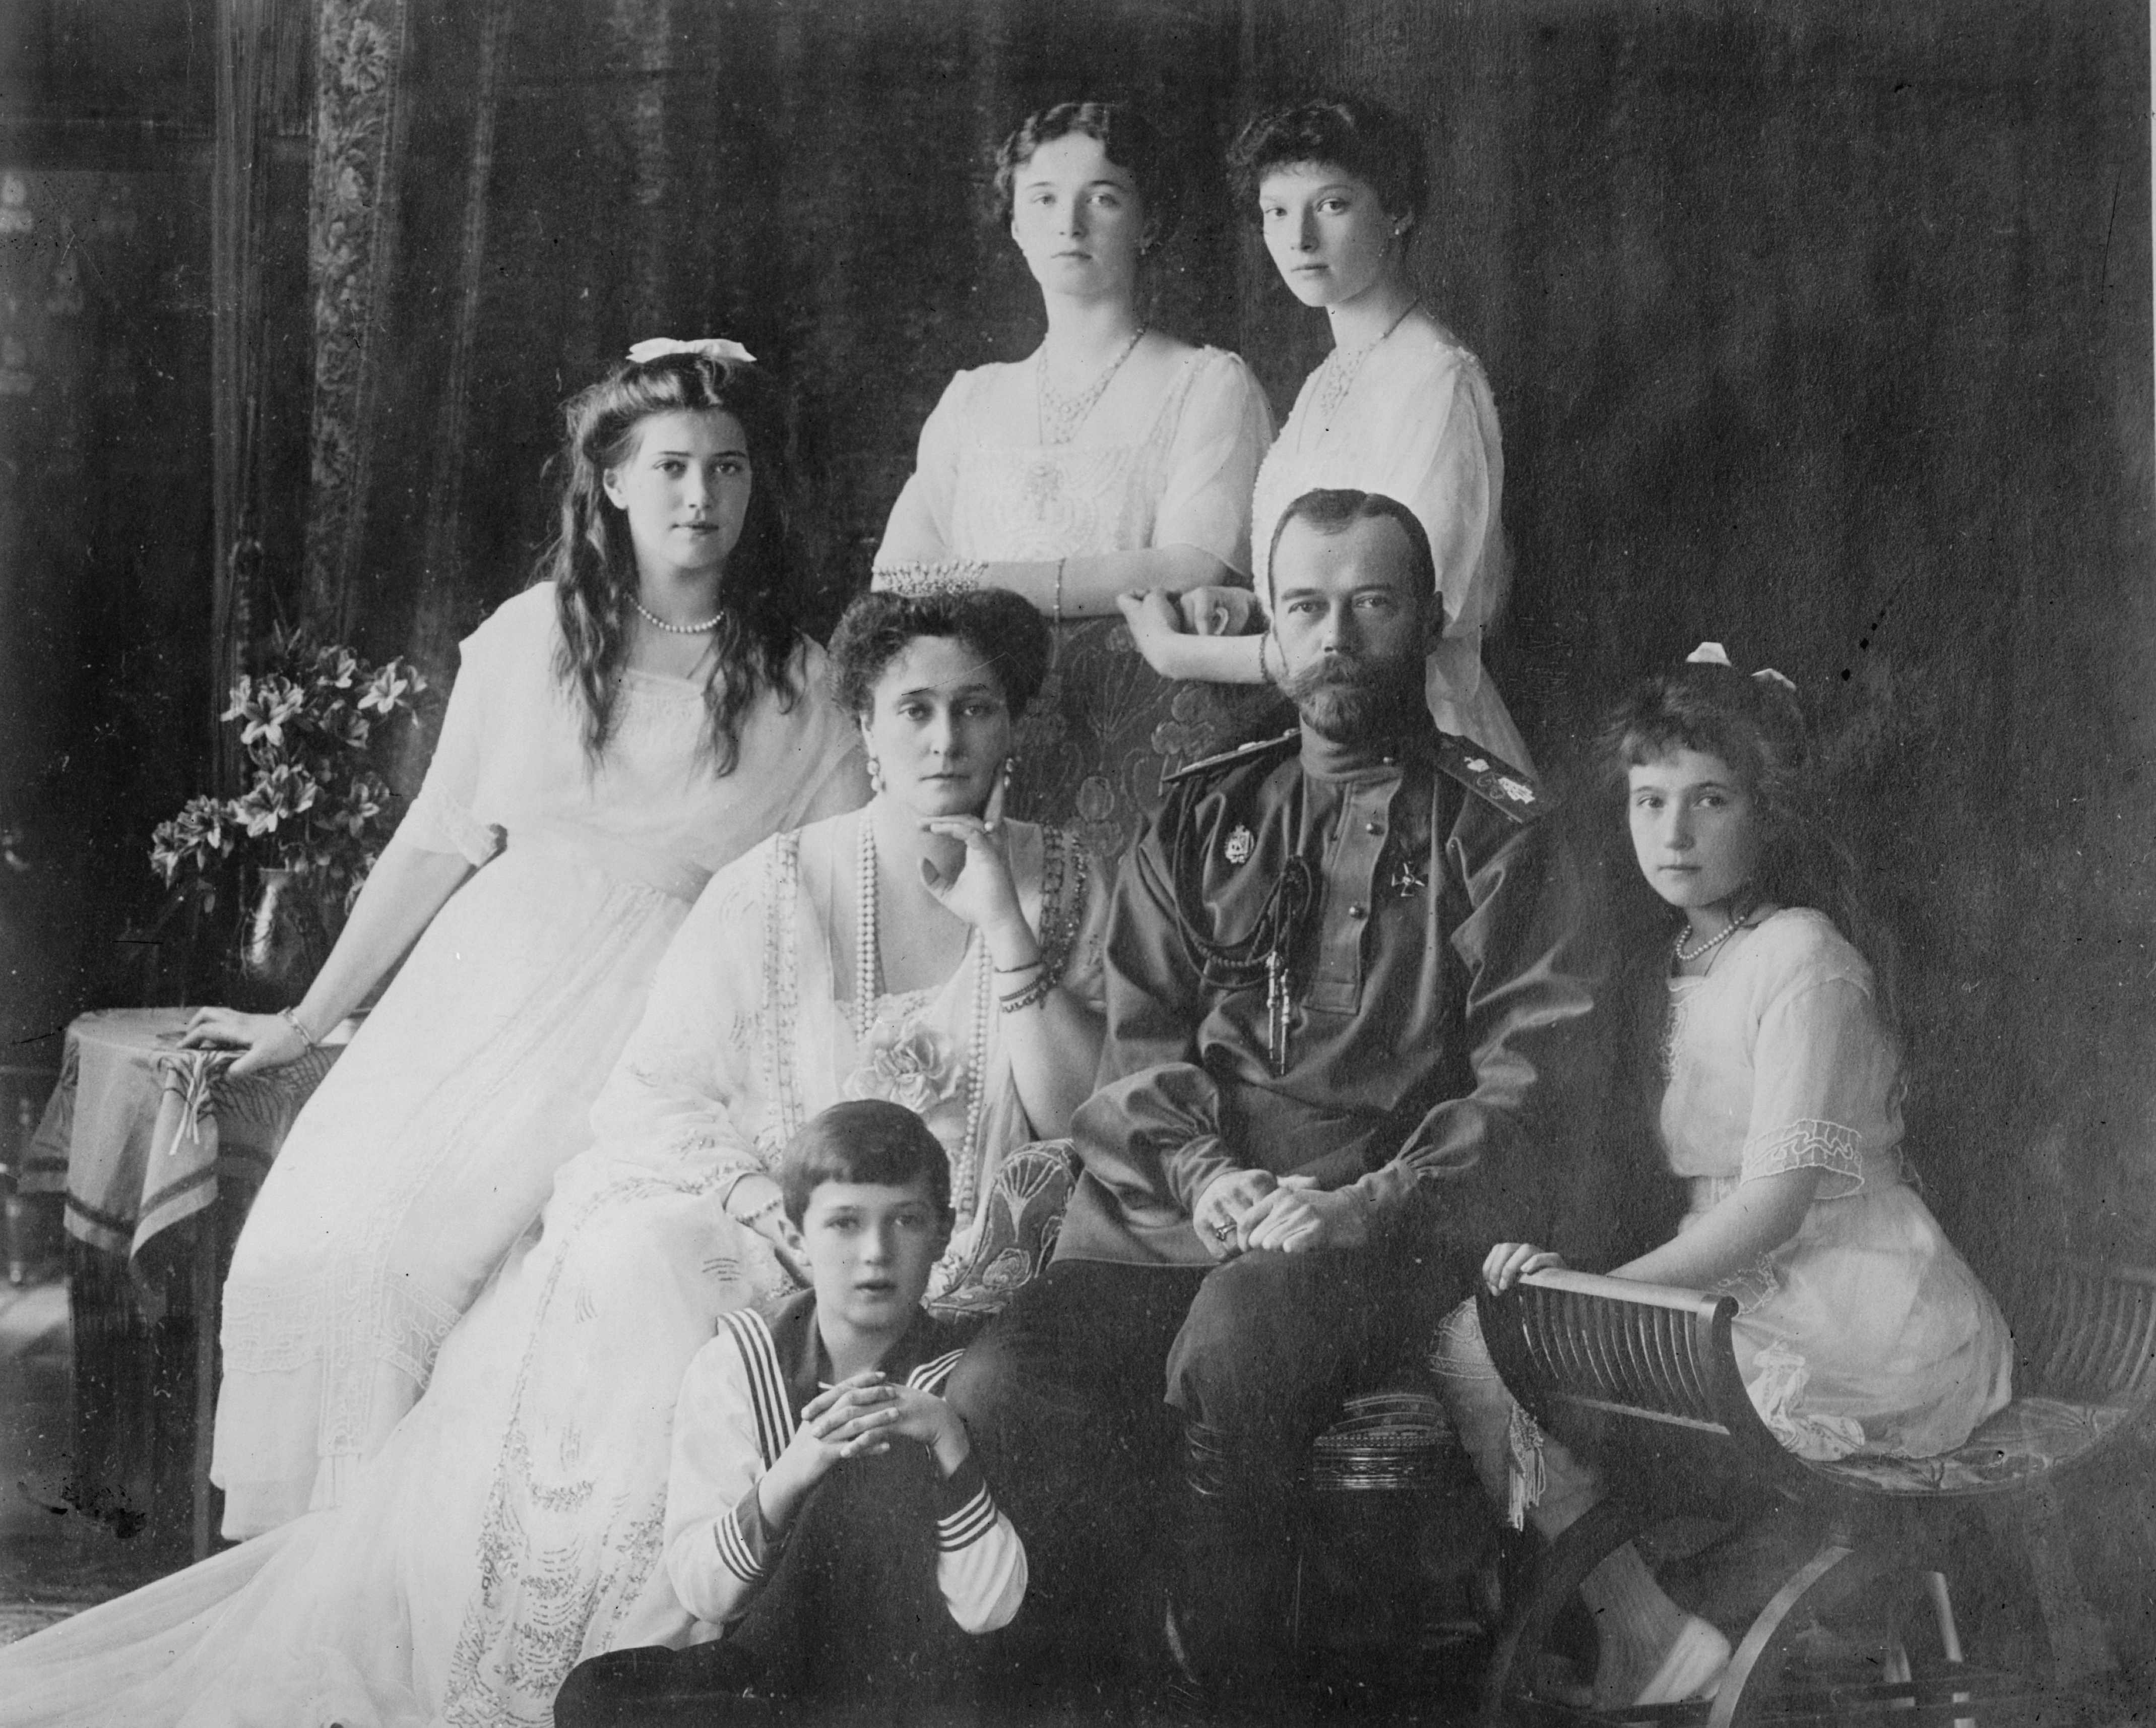 Happier days: The tsar and his family pose for a portrait in c1910, years before he was swept from power and murdered. Maria, Olga and Tatiana (left to right) are at the back. Alexandra and Nicholas are seated with Alexey at their feet. Anastasia is far right. (Photo by Getty Images)